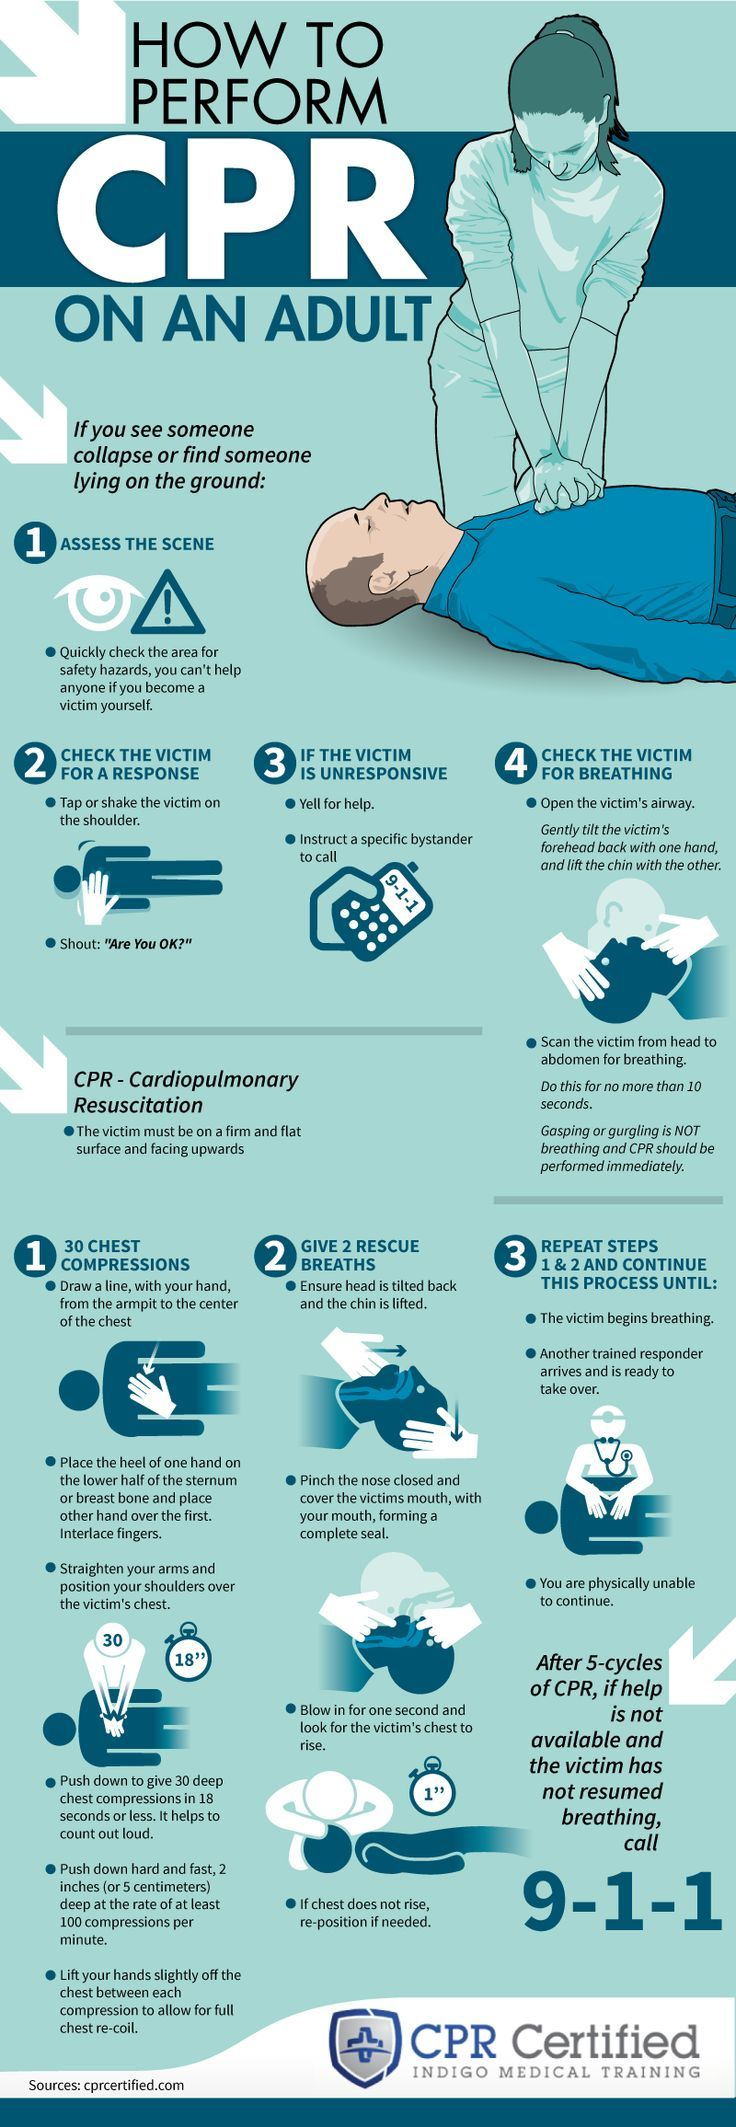 How To Perform Cpr On An Adult With Images How To Perform Cpr